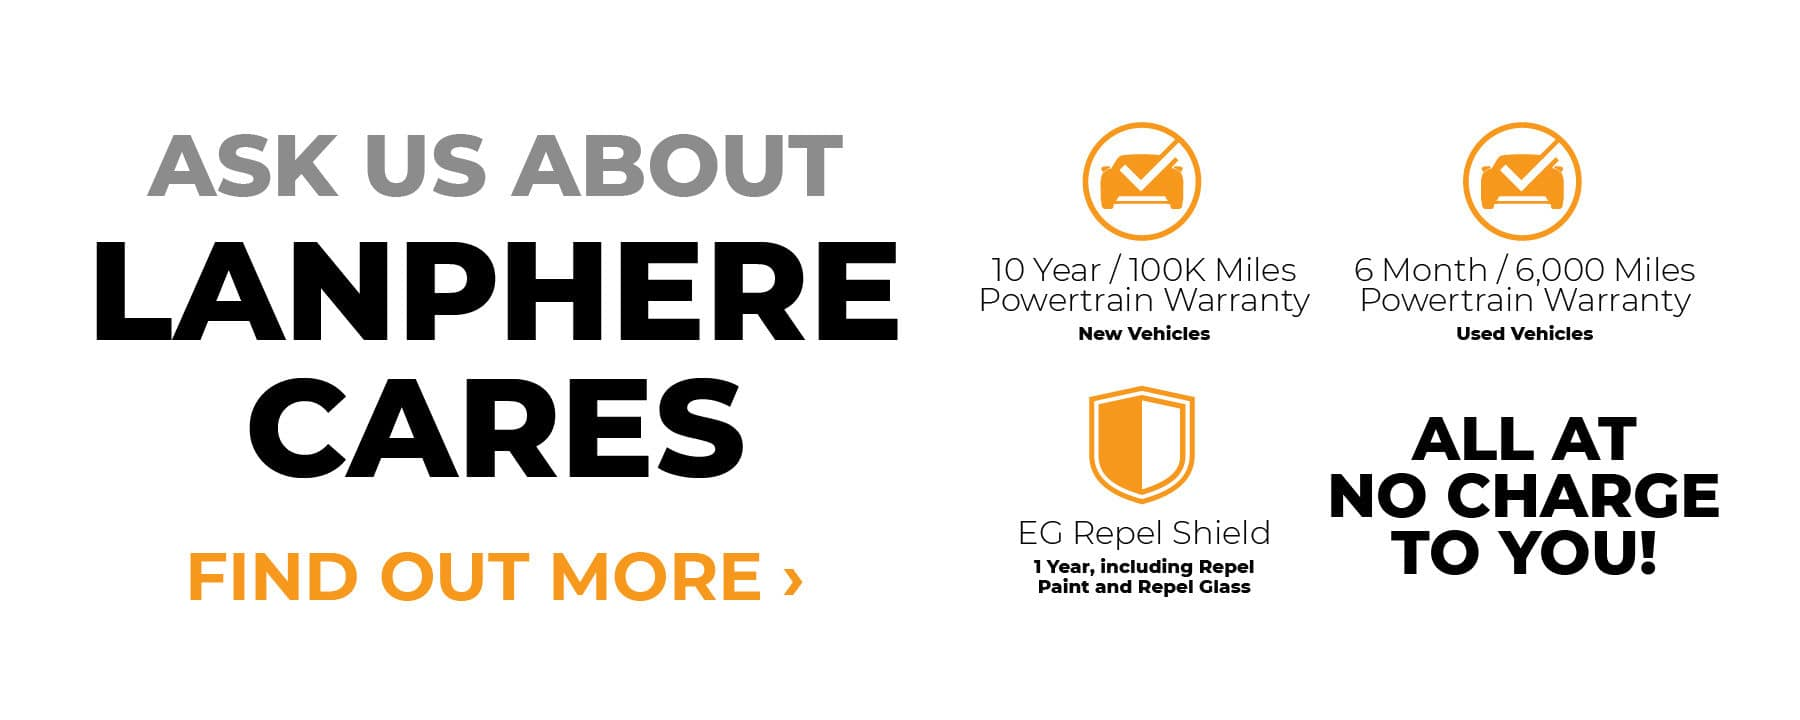 Ask us about our Lanphere Cares Program. 10 Year 100k Mile warranty on new cars and 6 Month 6,000 Mile Warranty on used cars. Earn points and get rewards for servicing your car. Learn more.